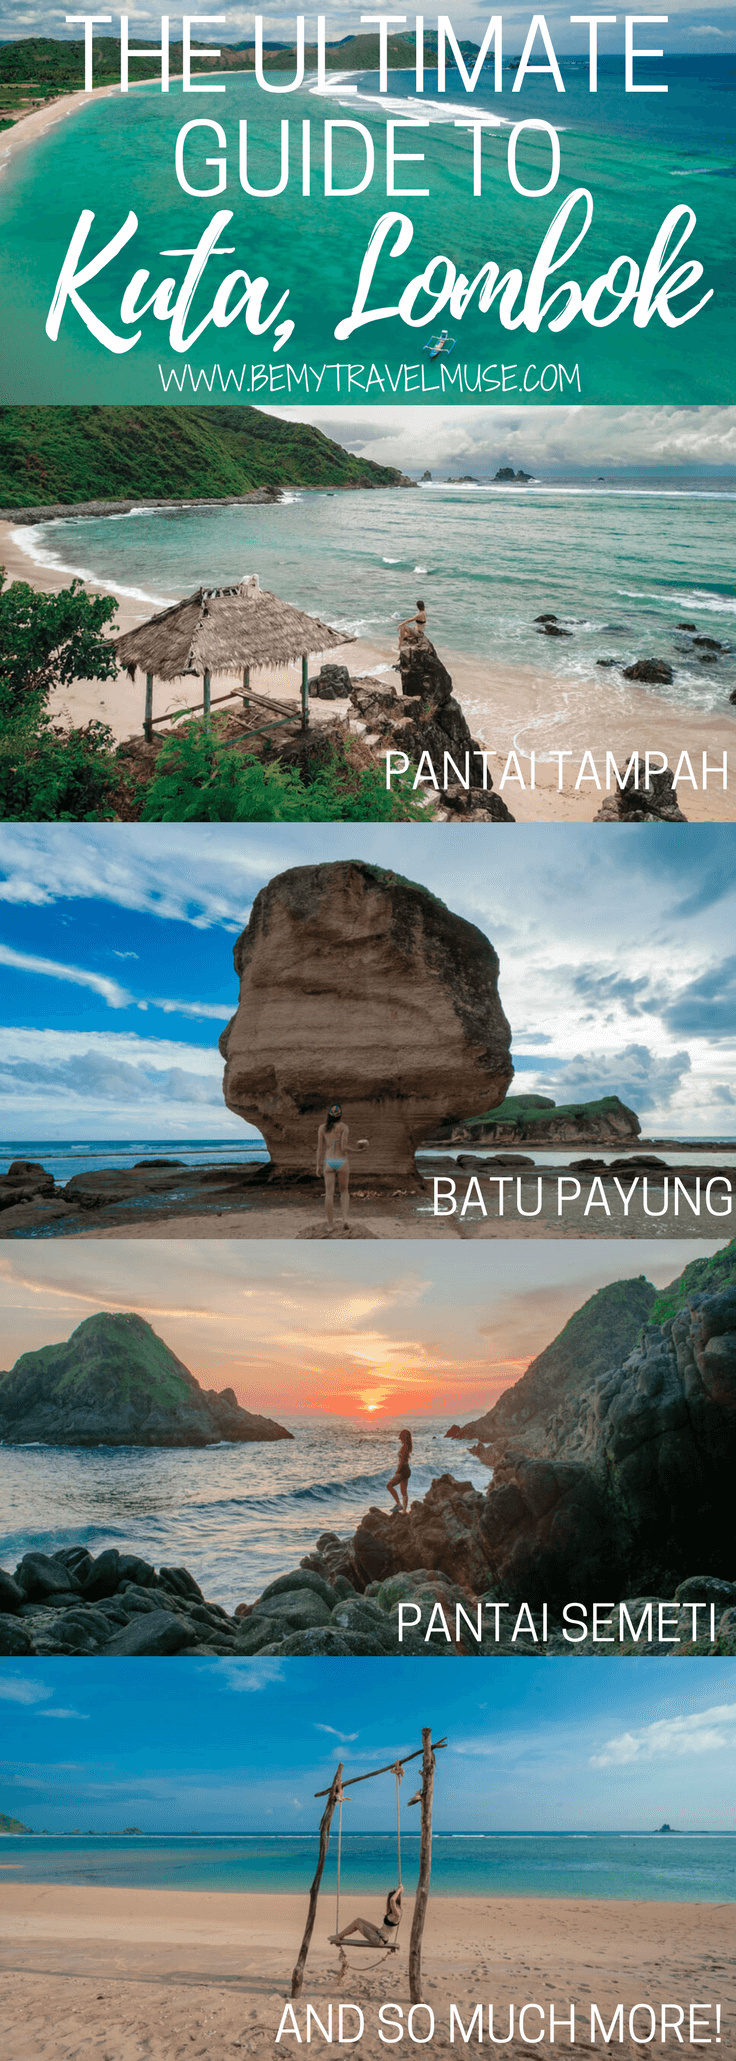 The ultimate guide to Kuta, Lombok. This beautiful spot in Lombok is laid back and peaceful. Click to check out the best beaches, where to stay, where to eat and what to do. Indonesia travel tips | Indonesia off the beaten path | Be My Travel Muse